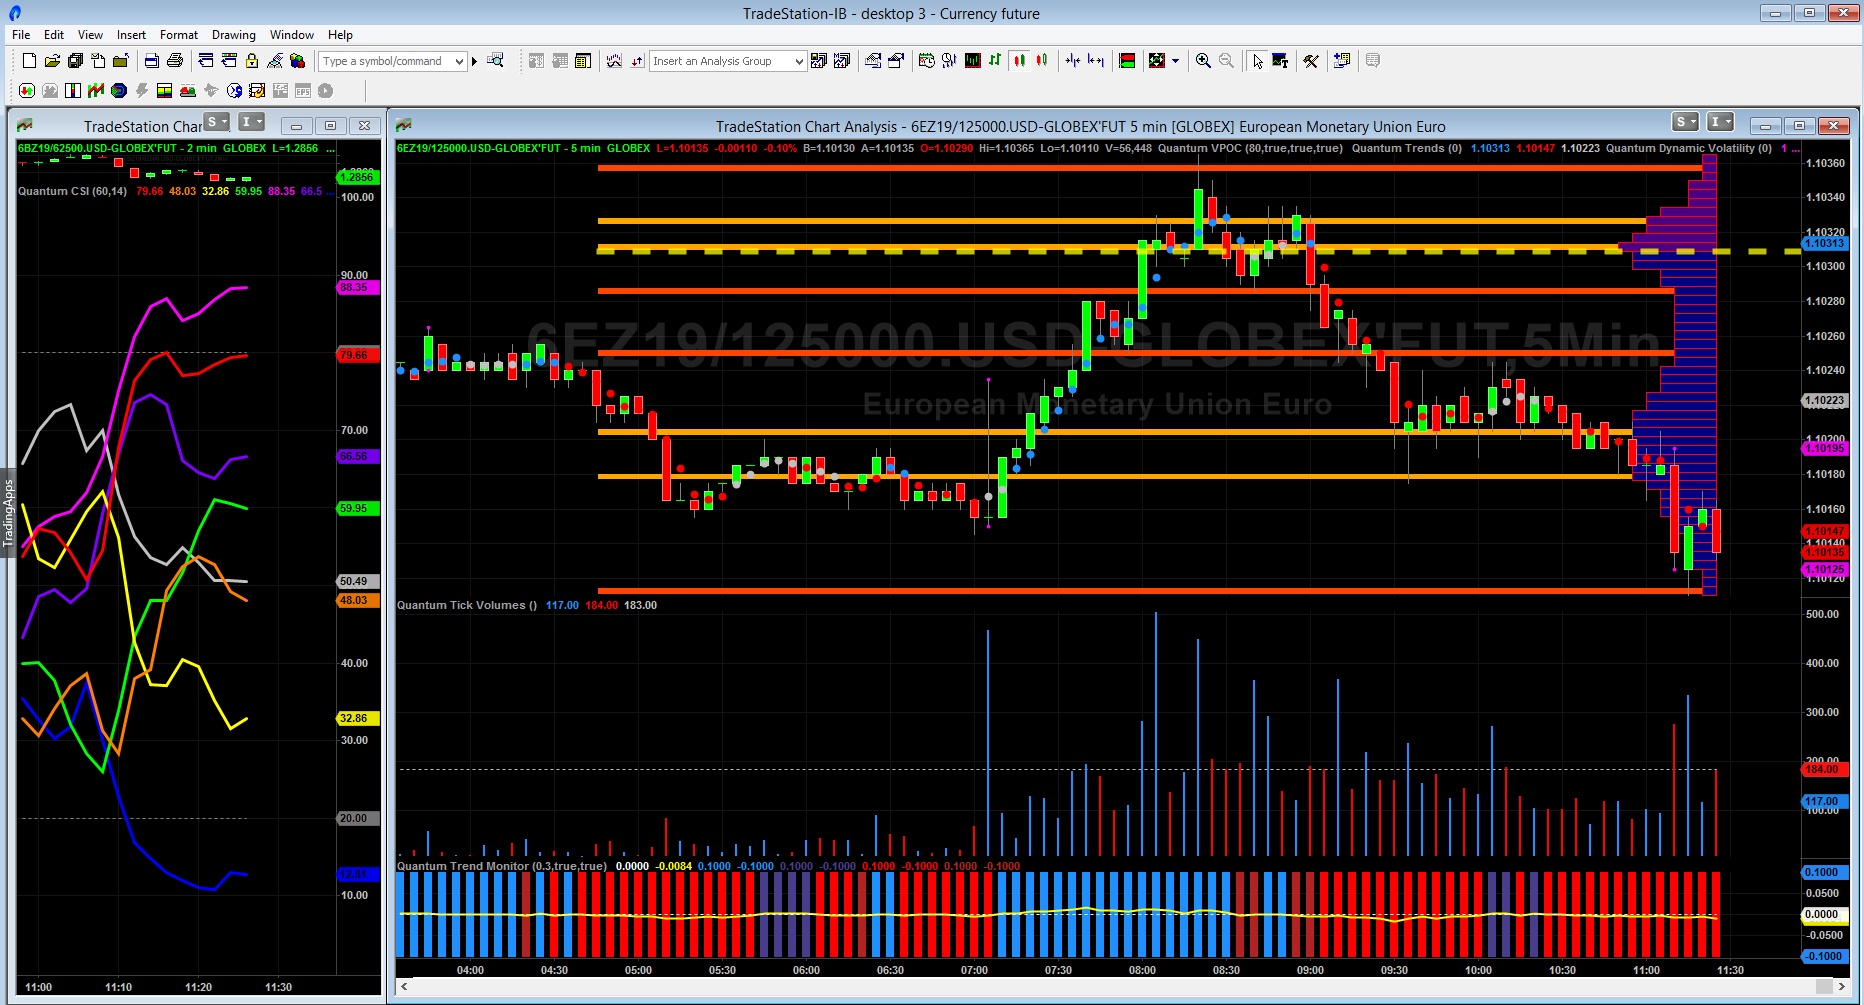 Trading currency futures on Tradestation